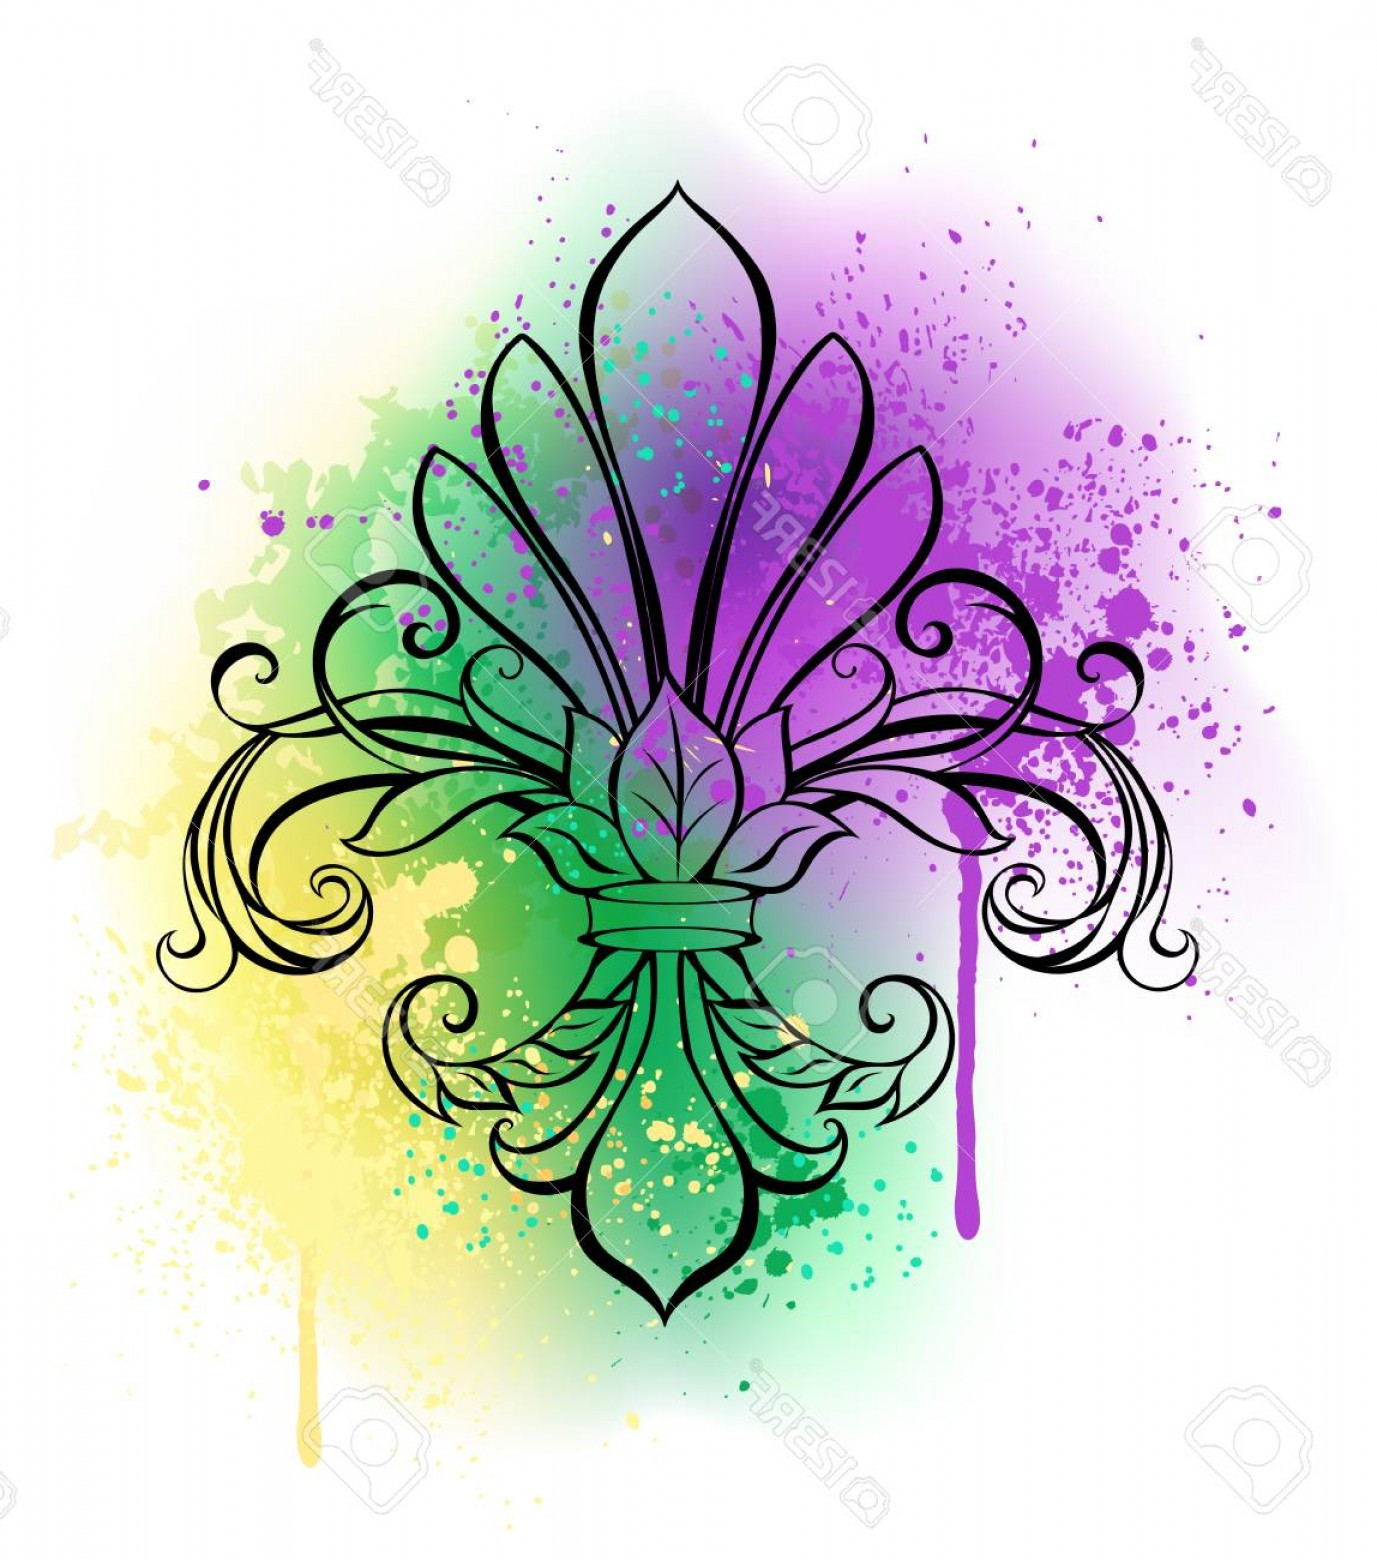 Purple Green And White Vector: Photostock Vector Contour Lily On A White Background Shaded With Purple Green And Yellow Watercolor Paint Painted Fleu